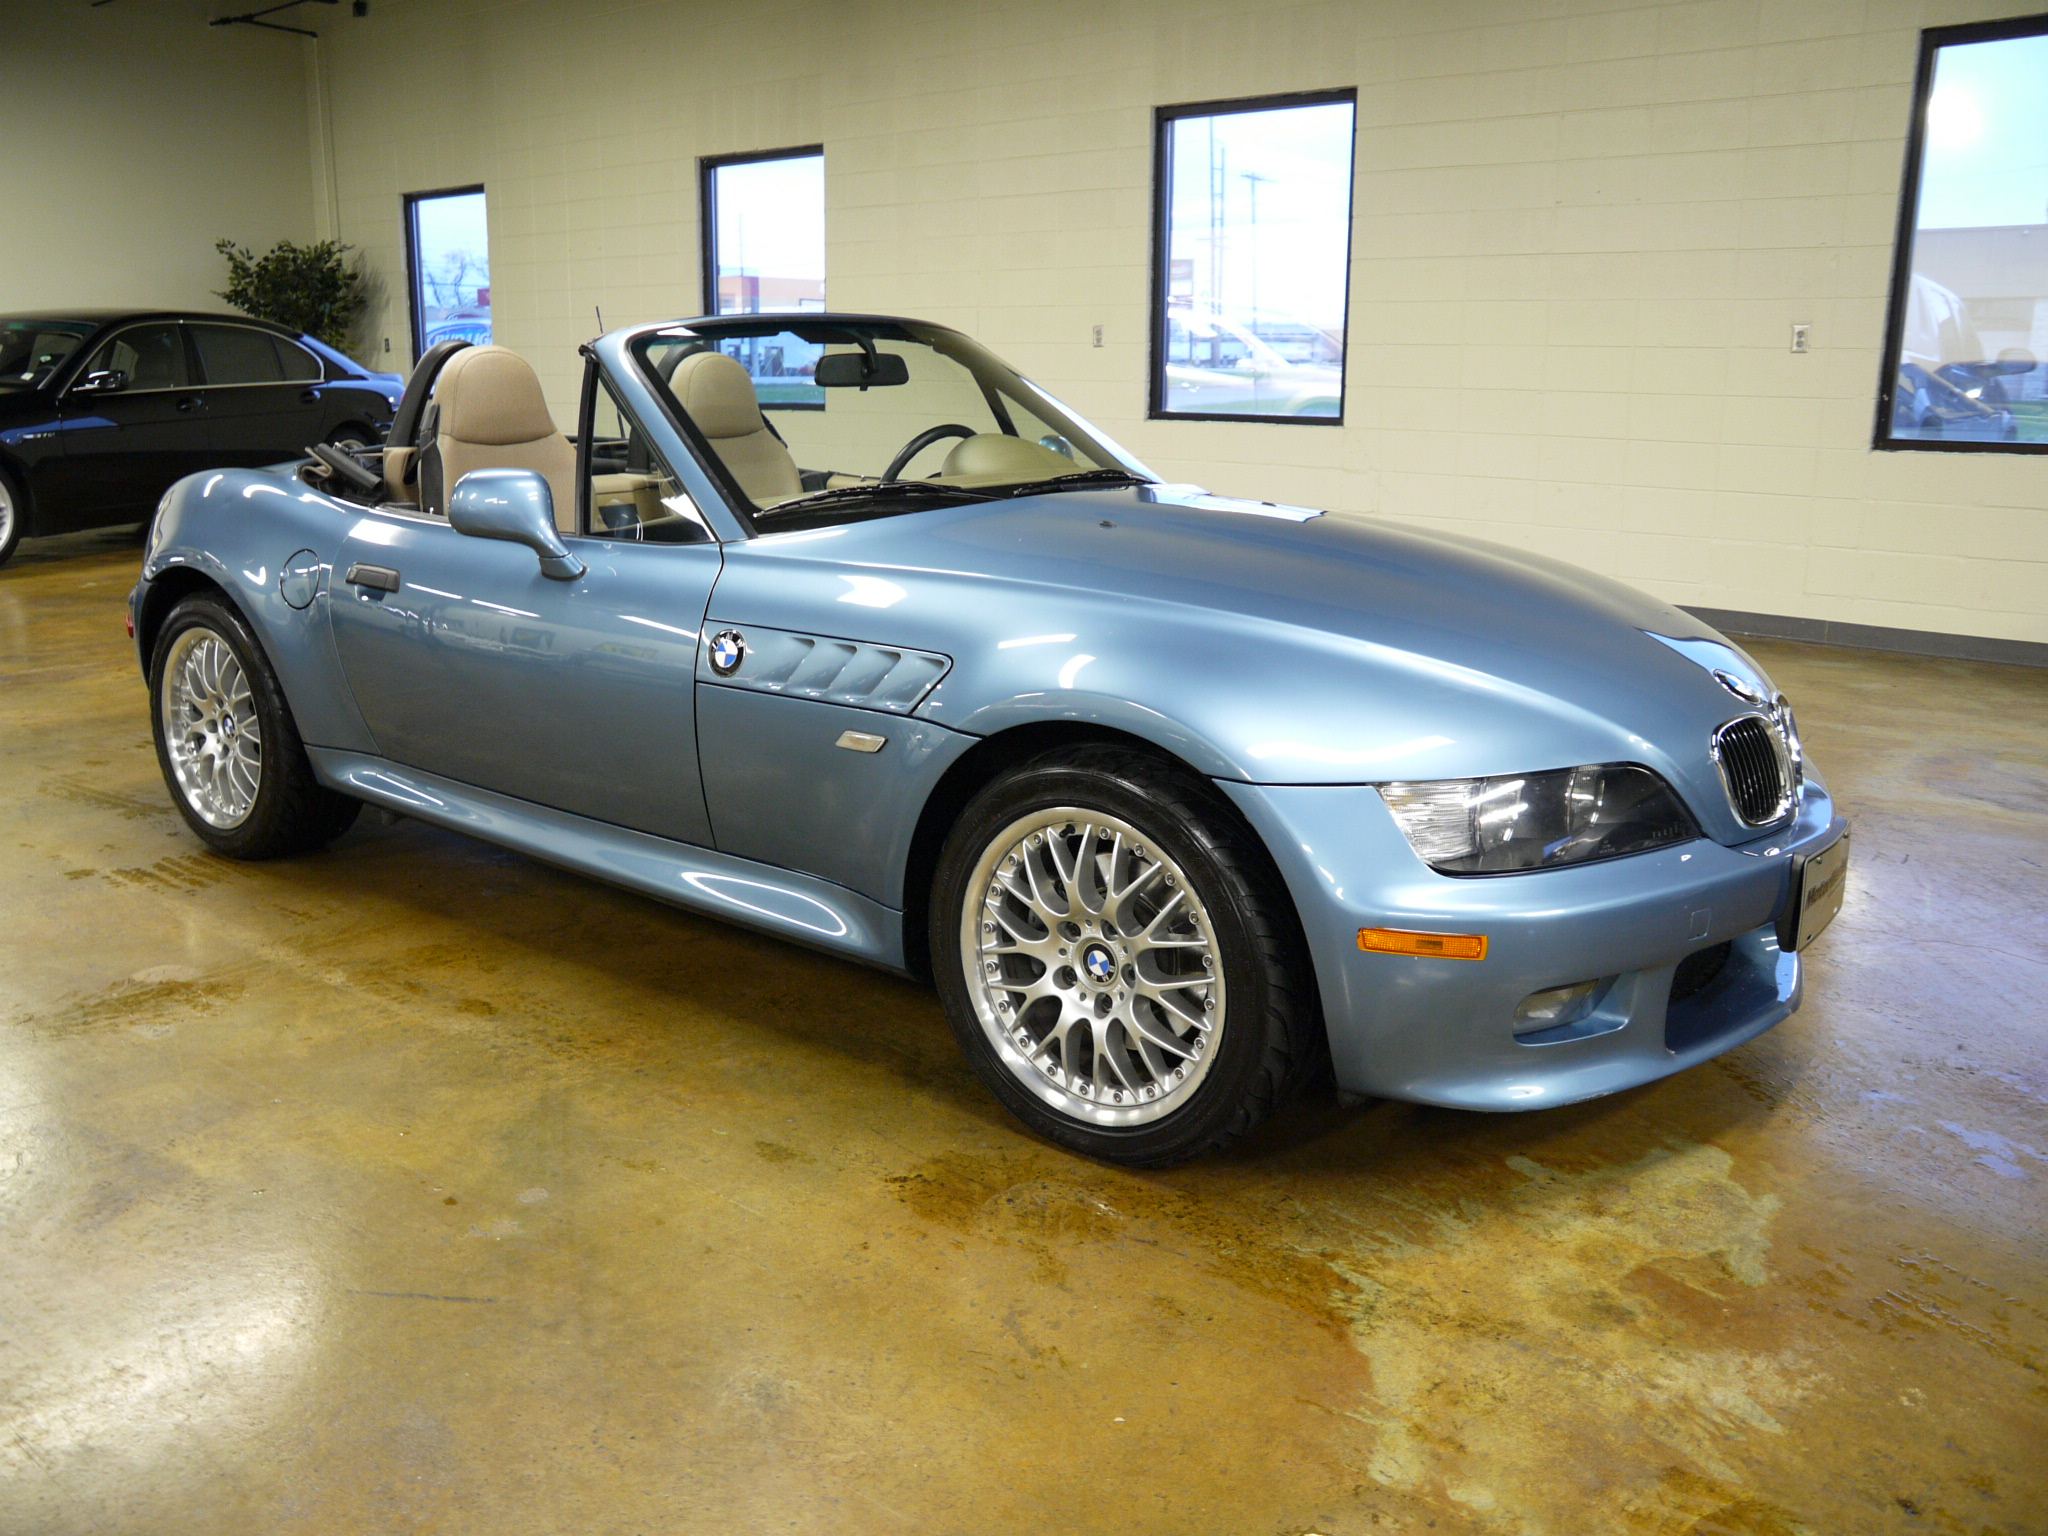 BMW Z3 2009: Review, Amazing Pictures and Images - Look at ...